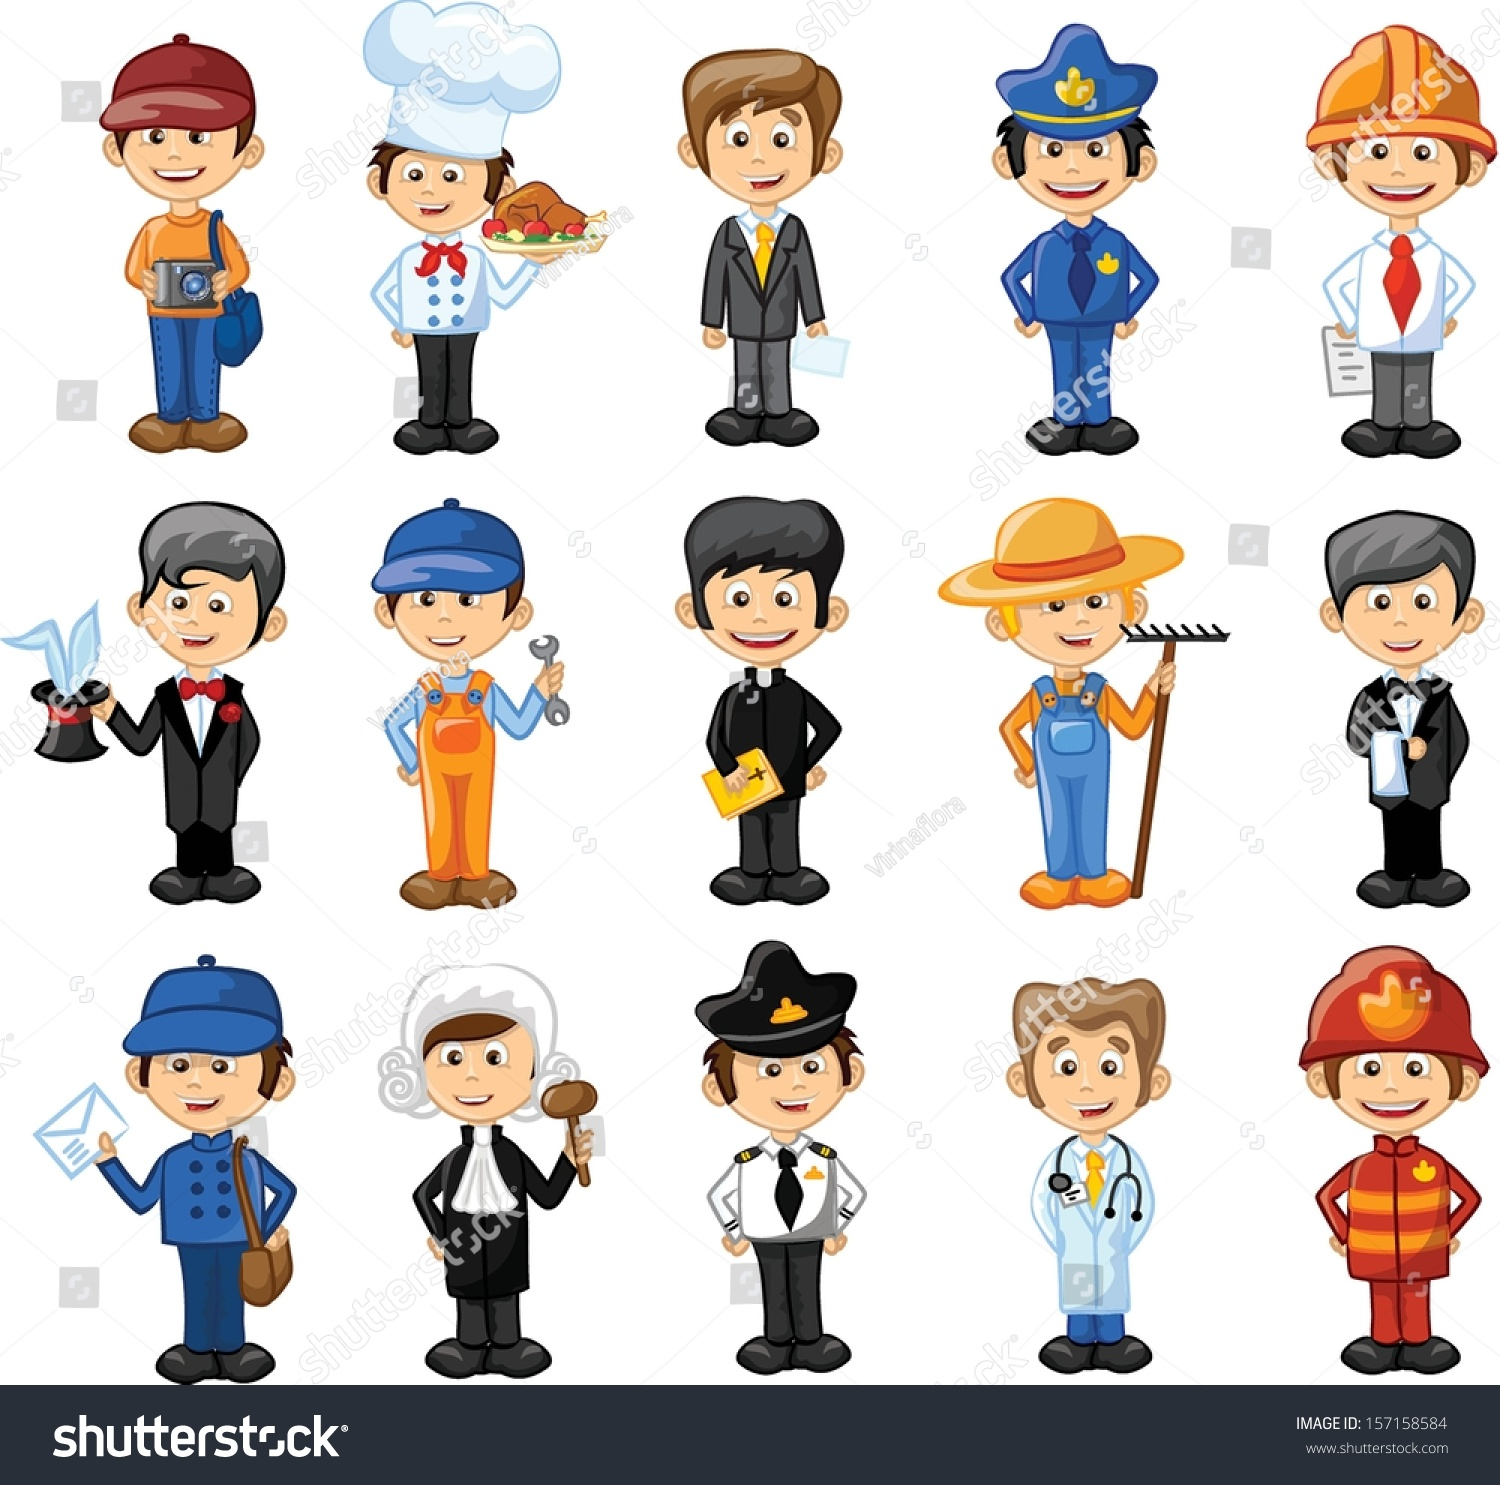 Cartoon characters different professions stock vector for Arts and craft jobs